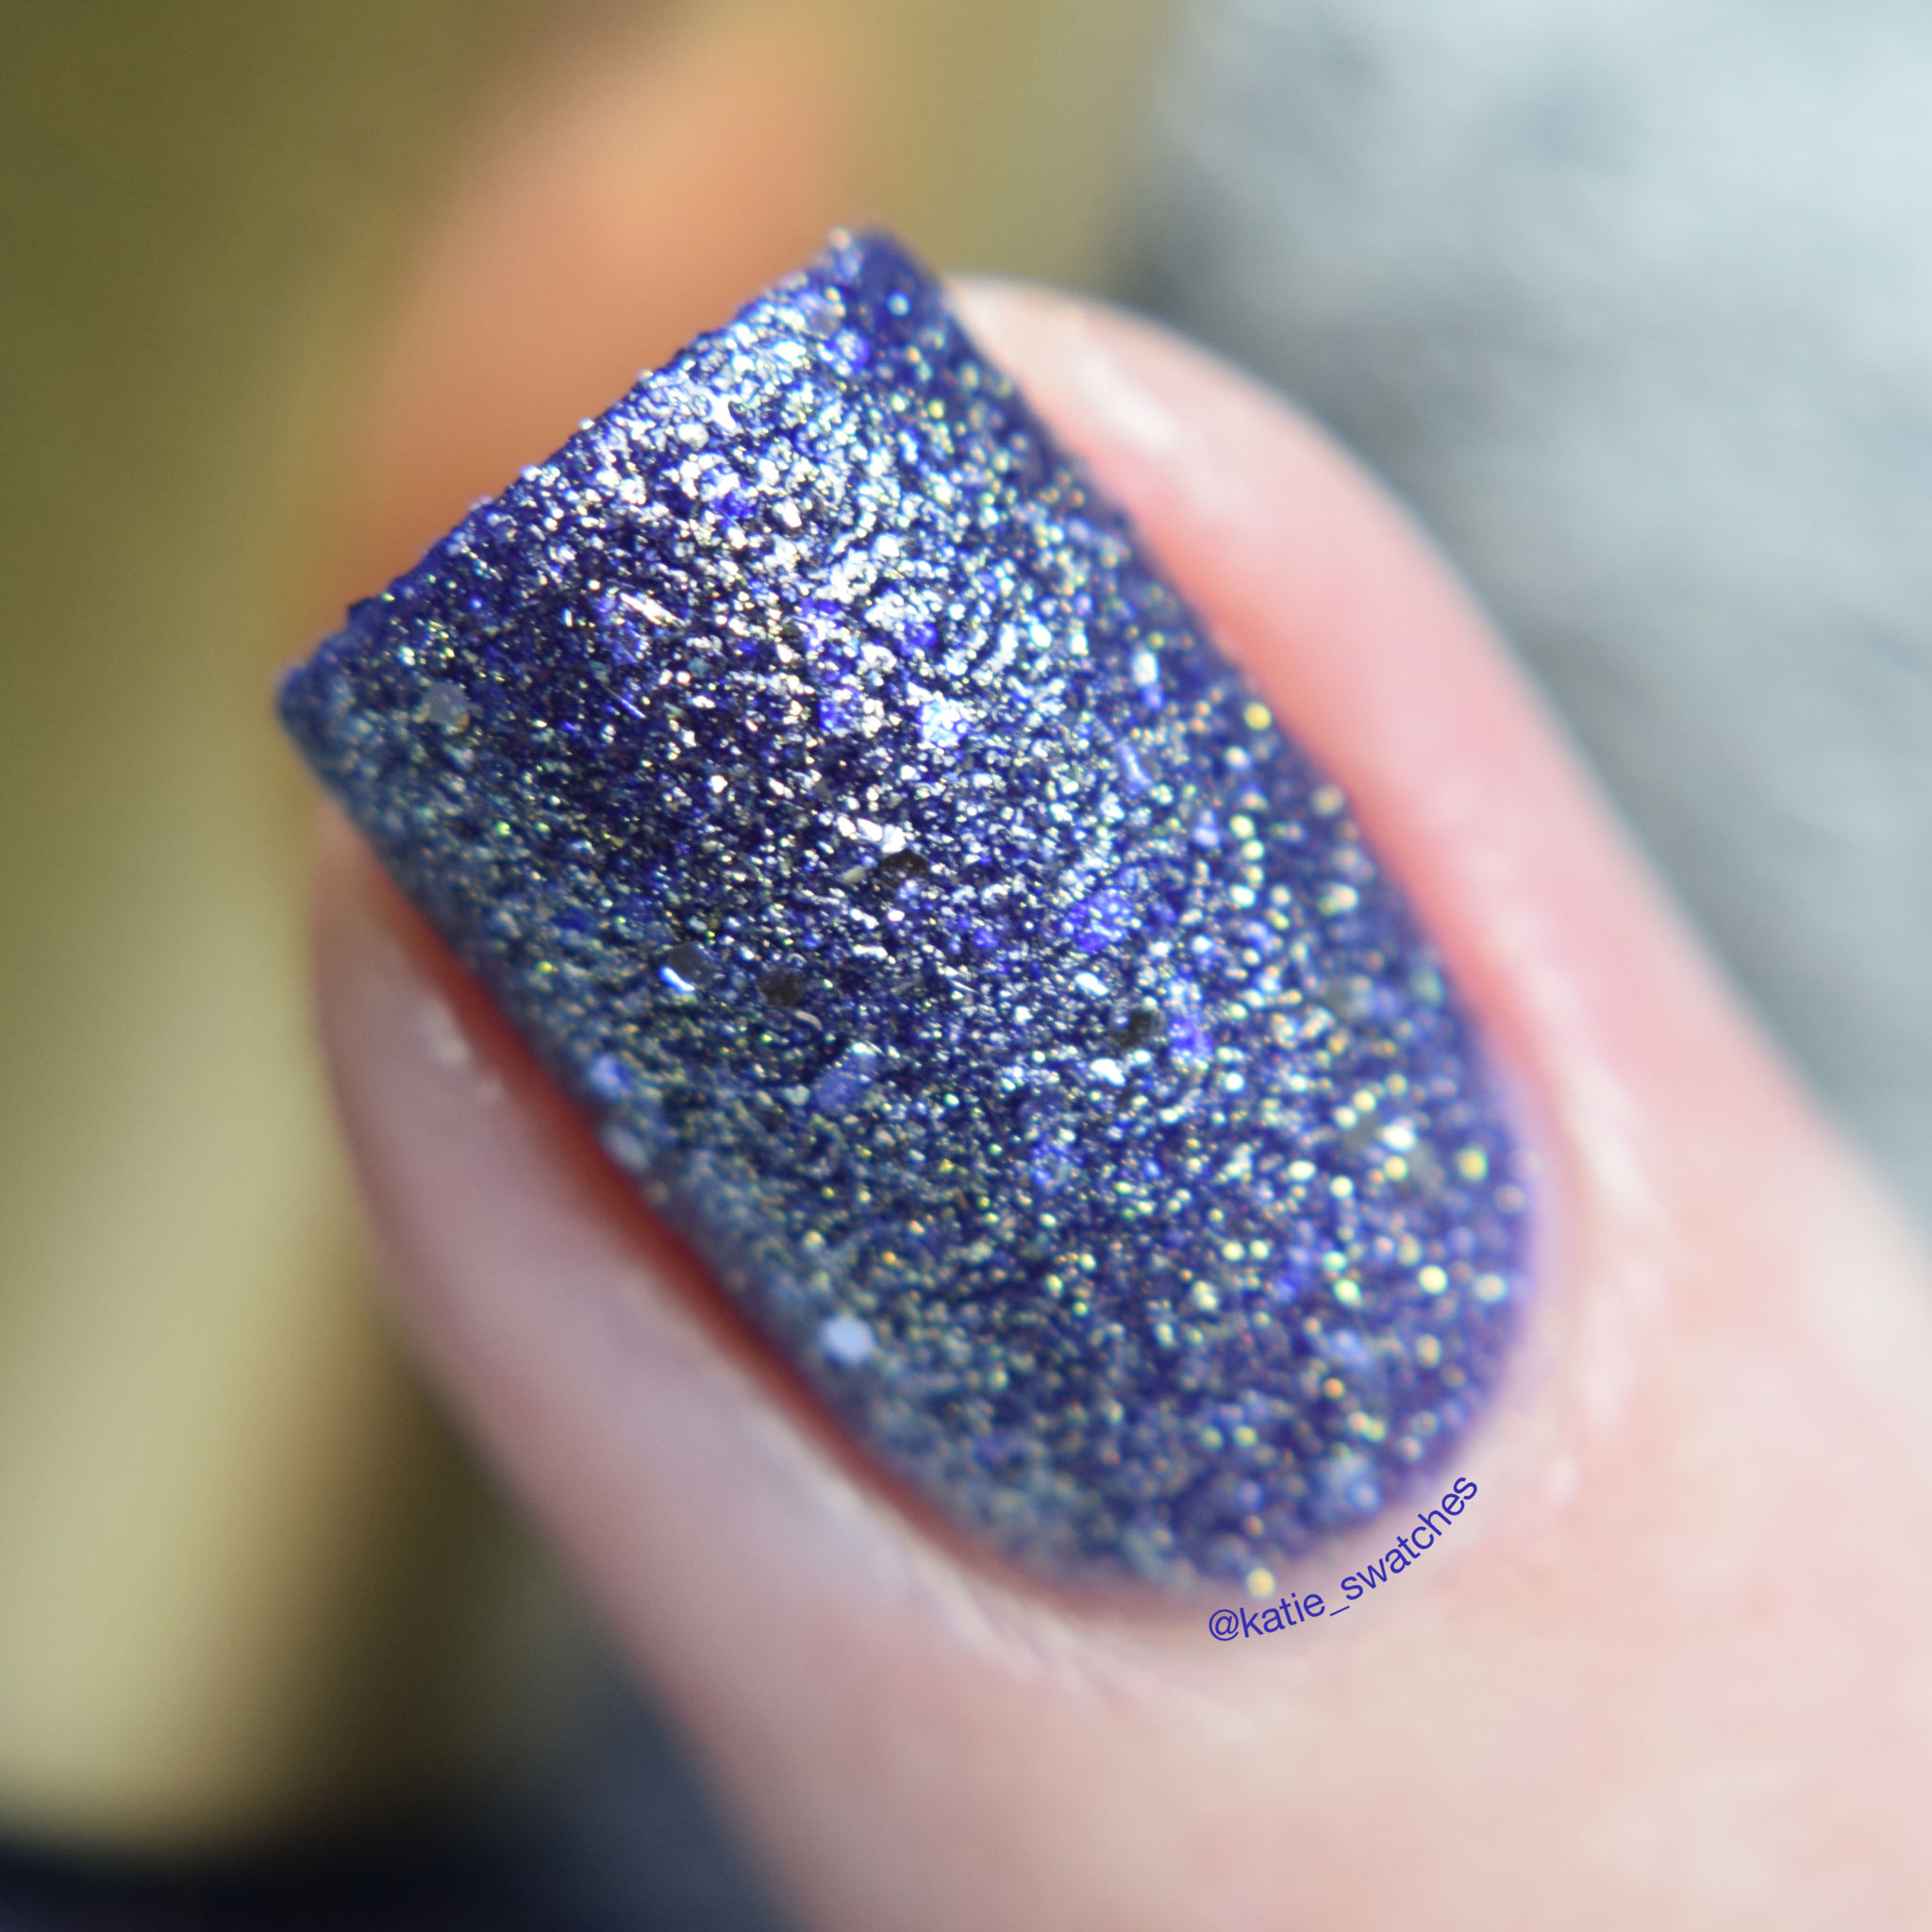 L'Oreal - Too Dimensional?! 136 textured nail polish macro